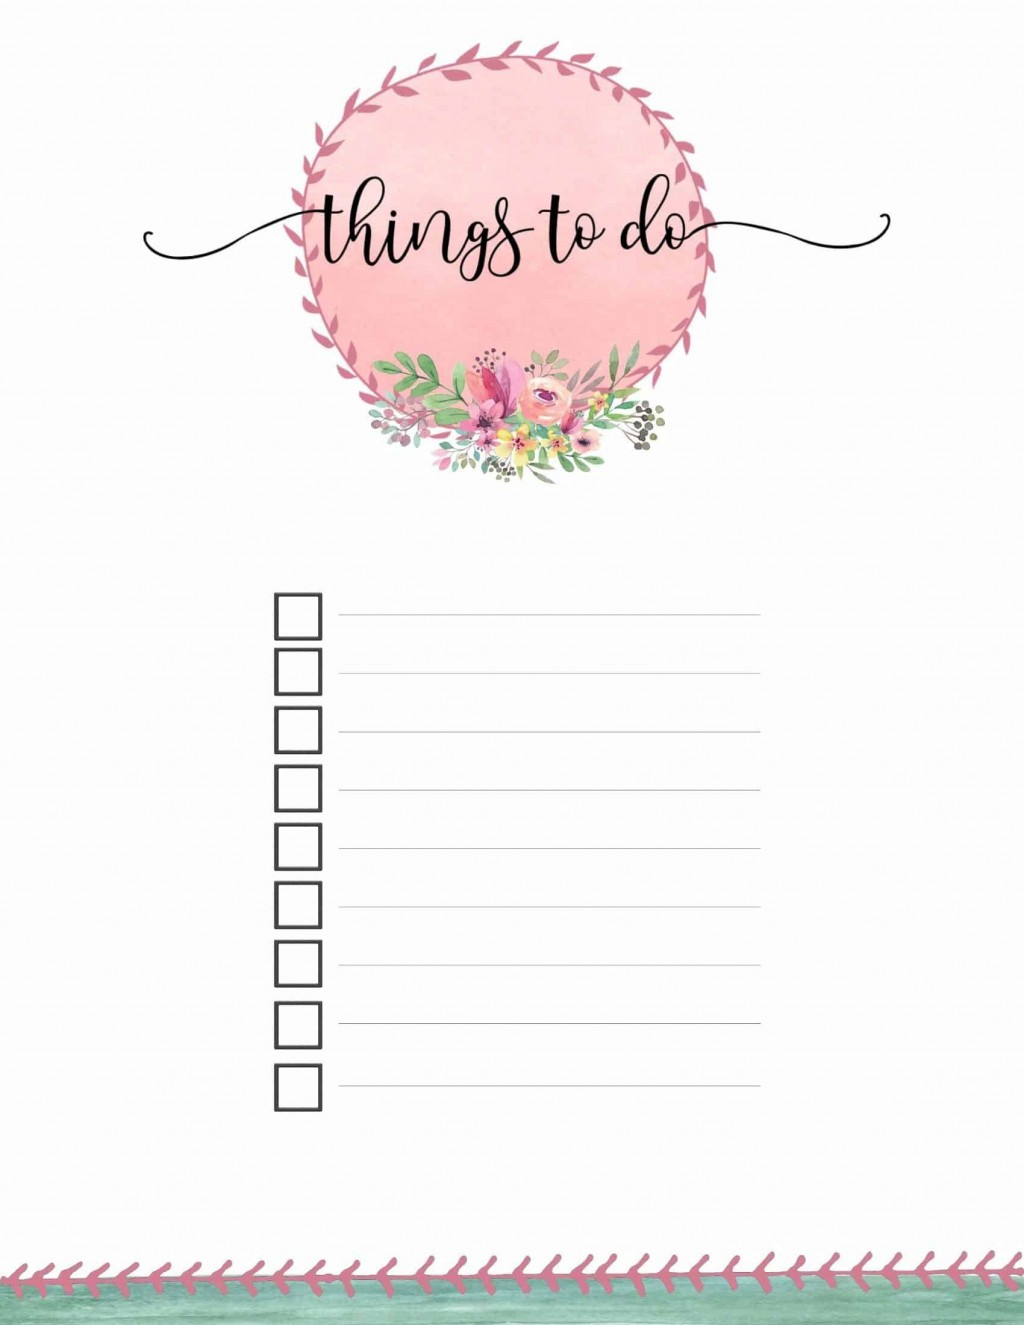 004 Remarkable Thing To Do List Template Example Large